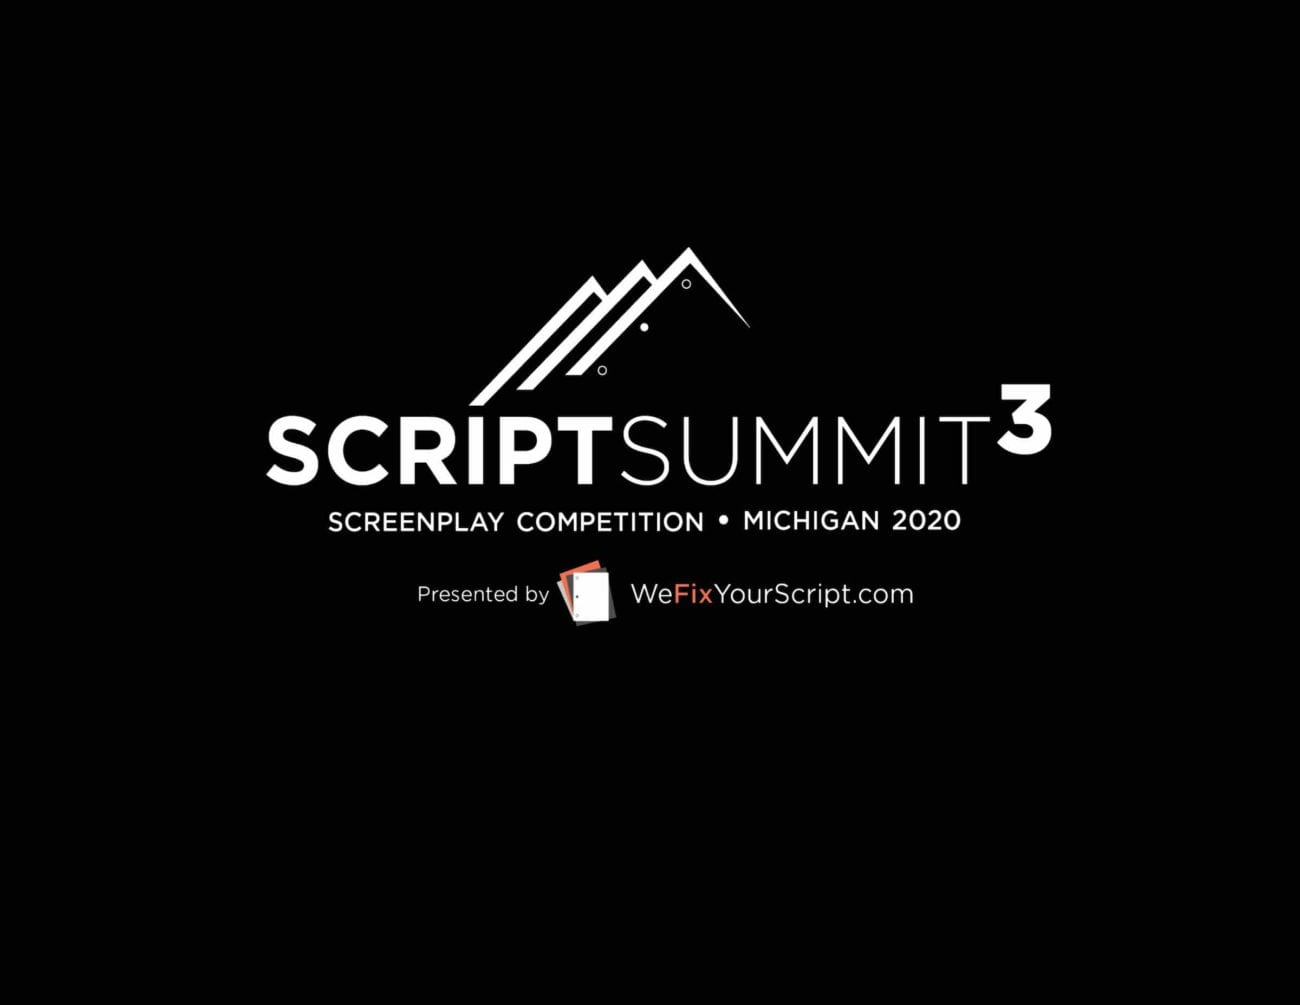 Script Summit promises to be one of the most important events of the year for screenwriters. Here's why you should get involved!